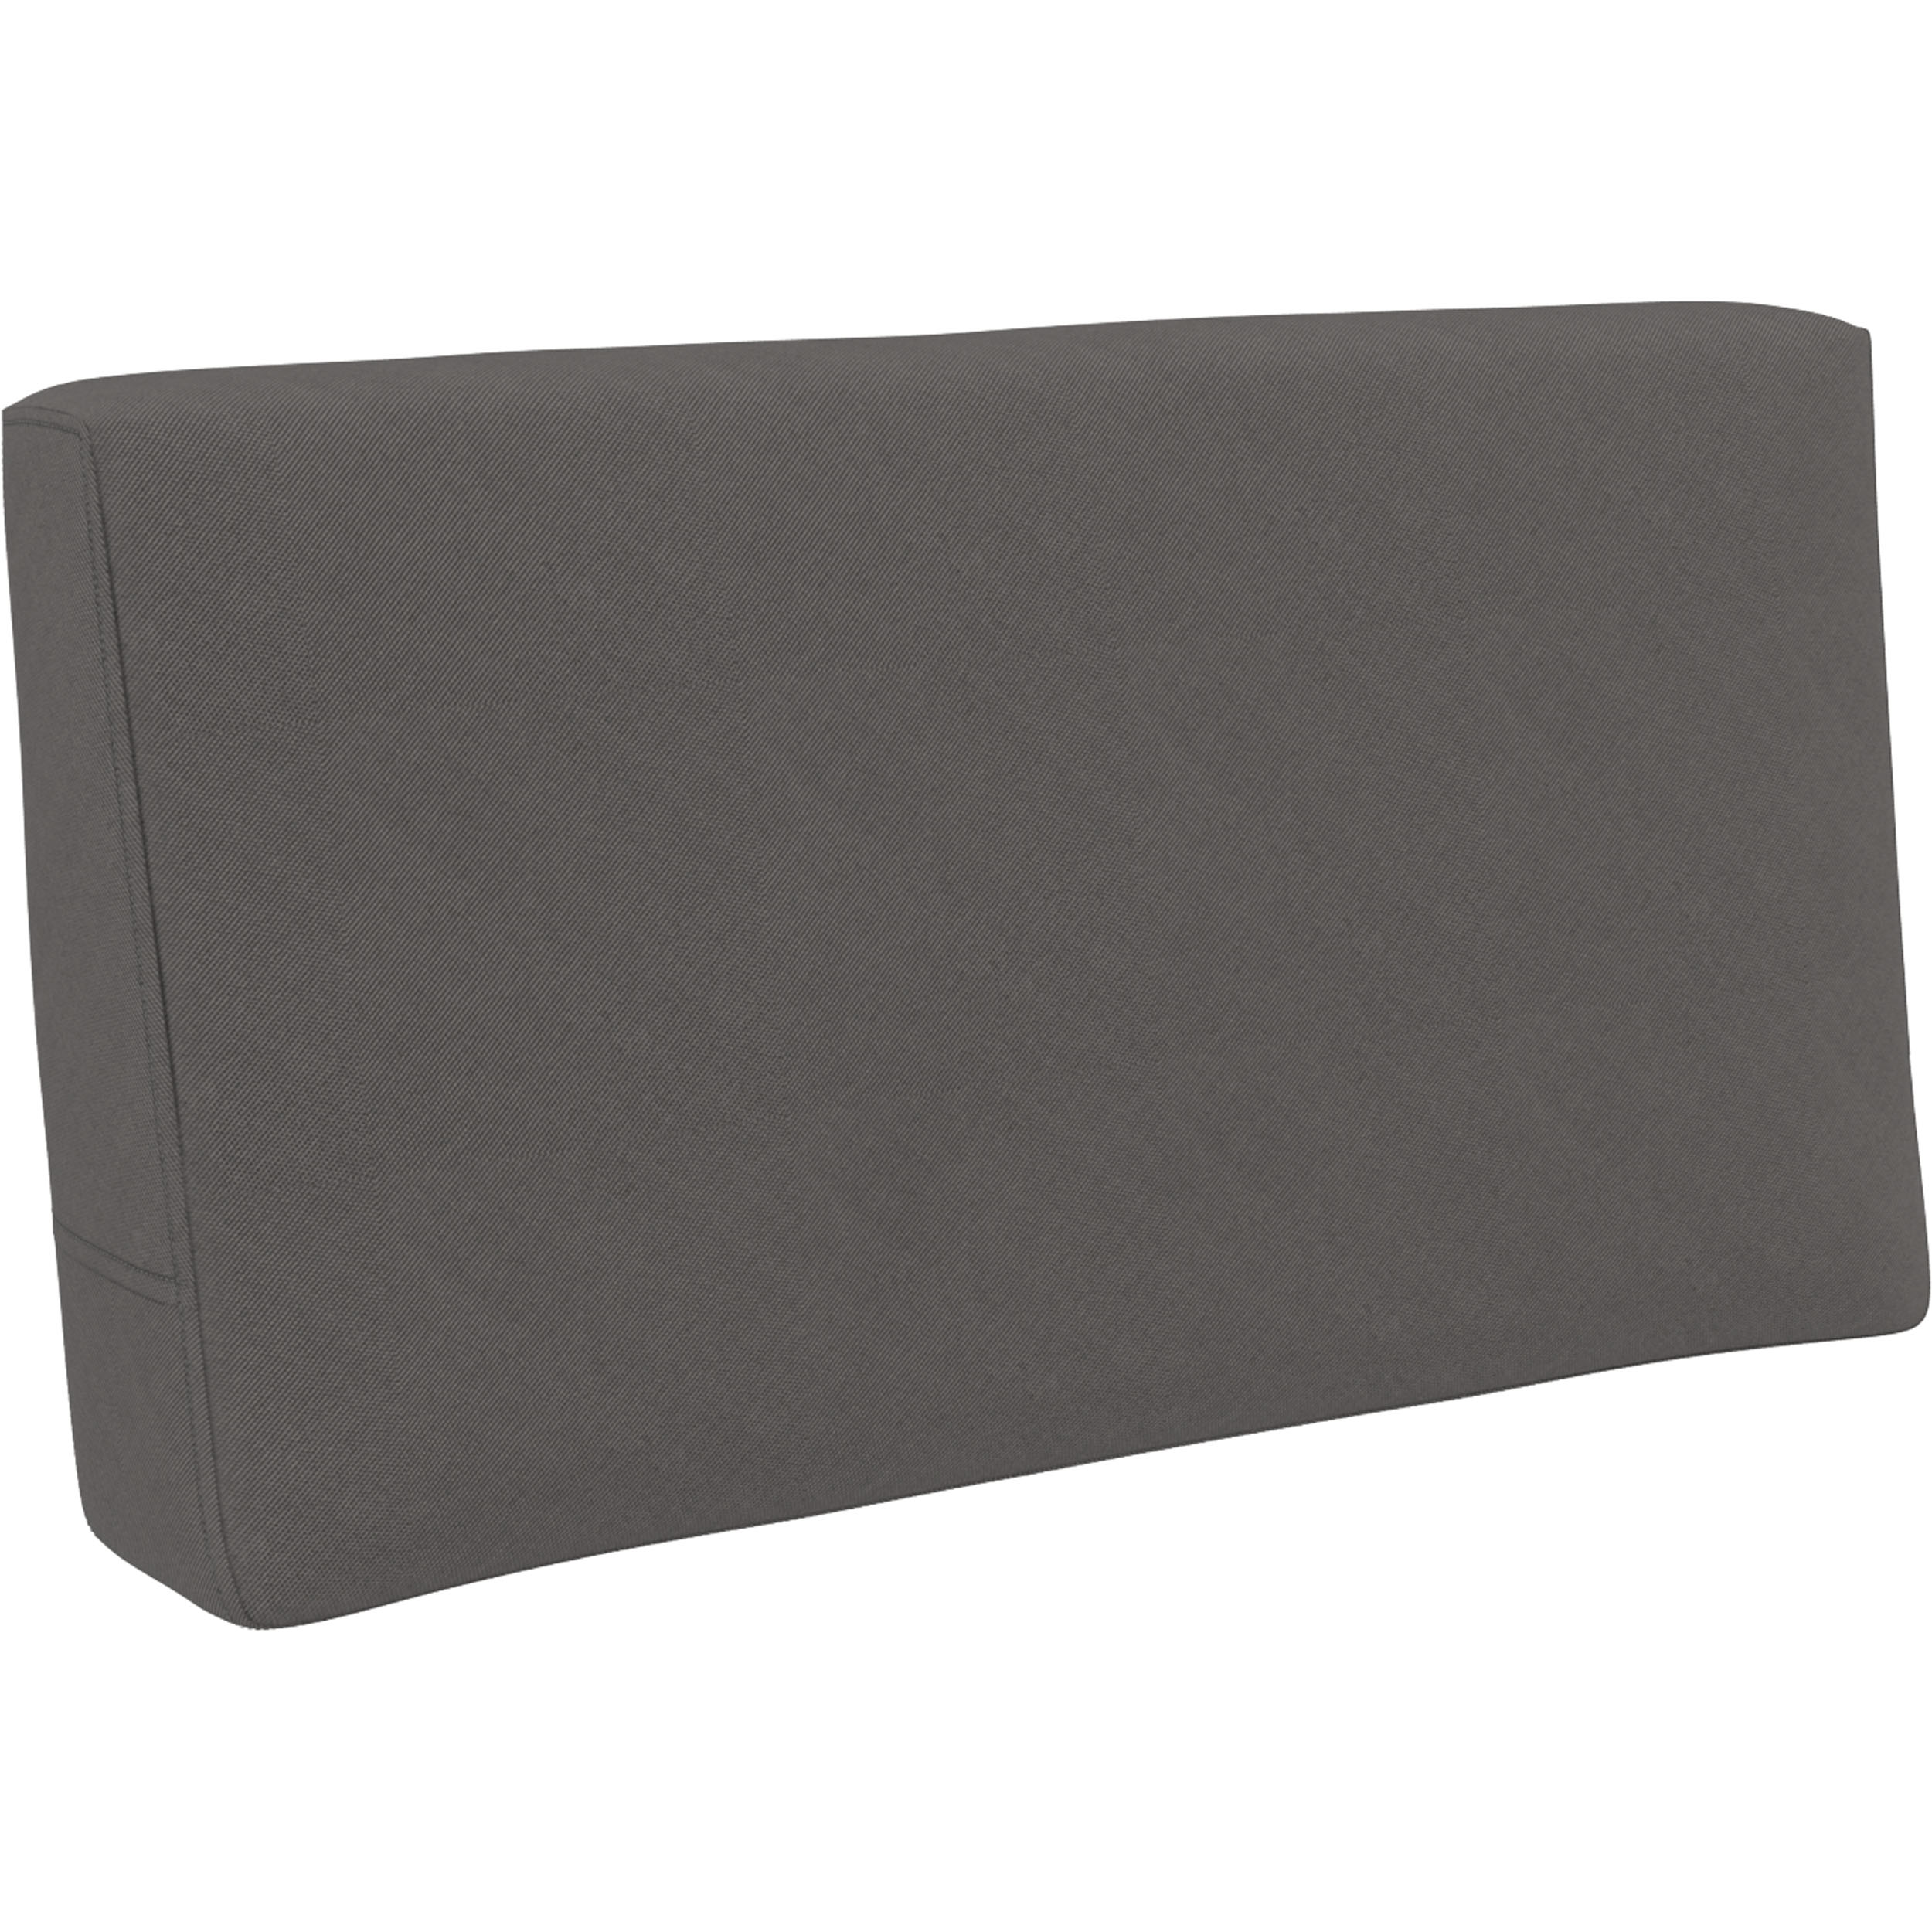 Mykonos Back Rest Cushion - Dark Grey